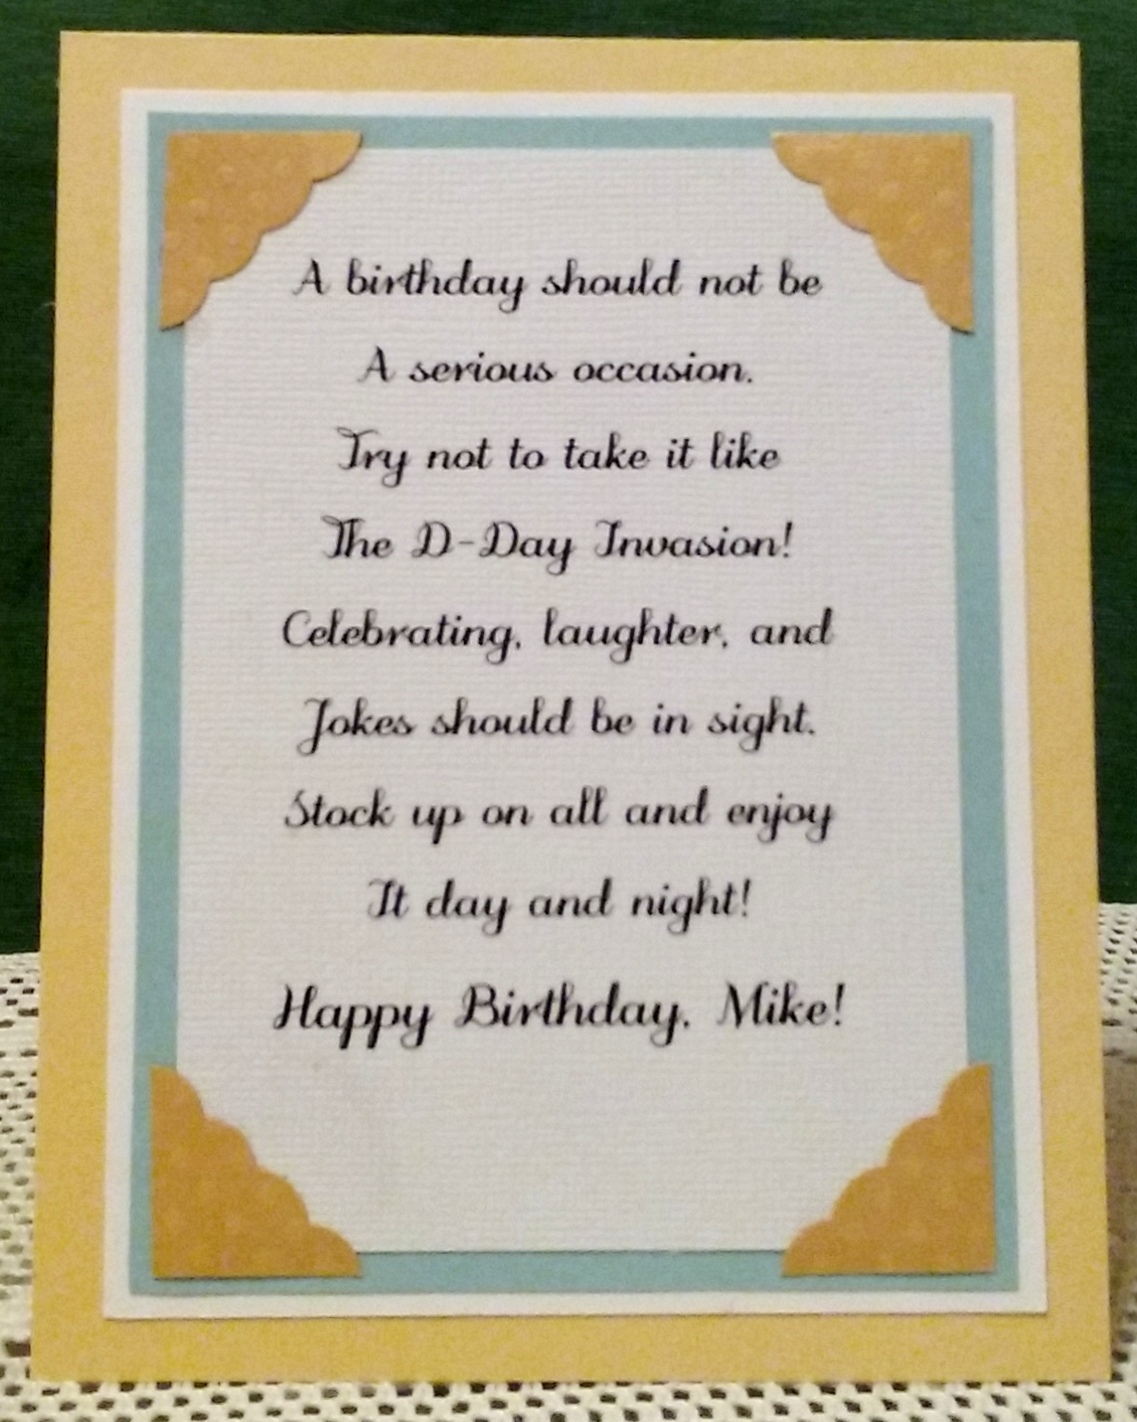 Embellishments And A Nice Verse Suited To My Brothers Birthday Below Is Finished Inside Design Share